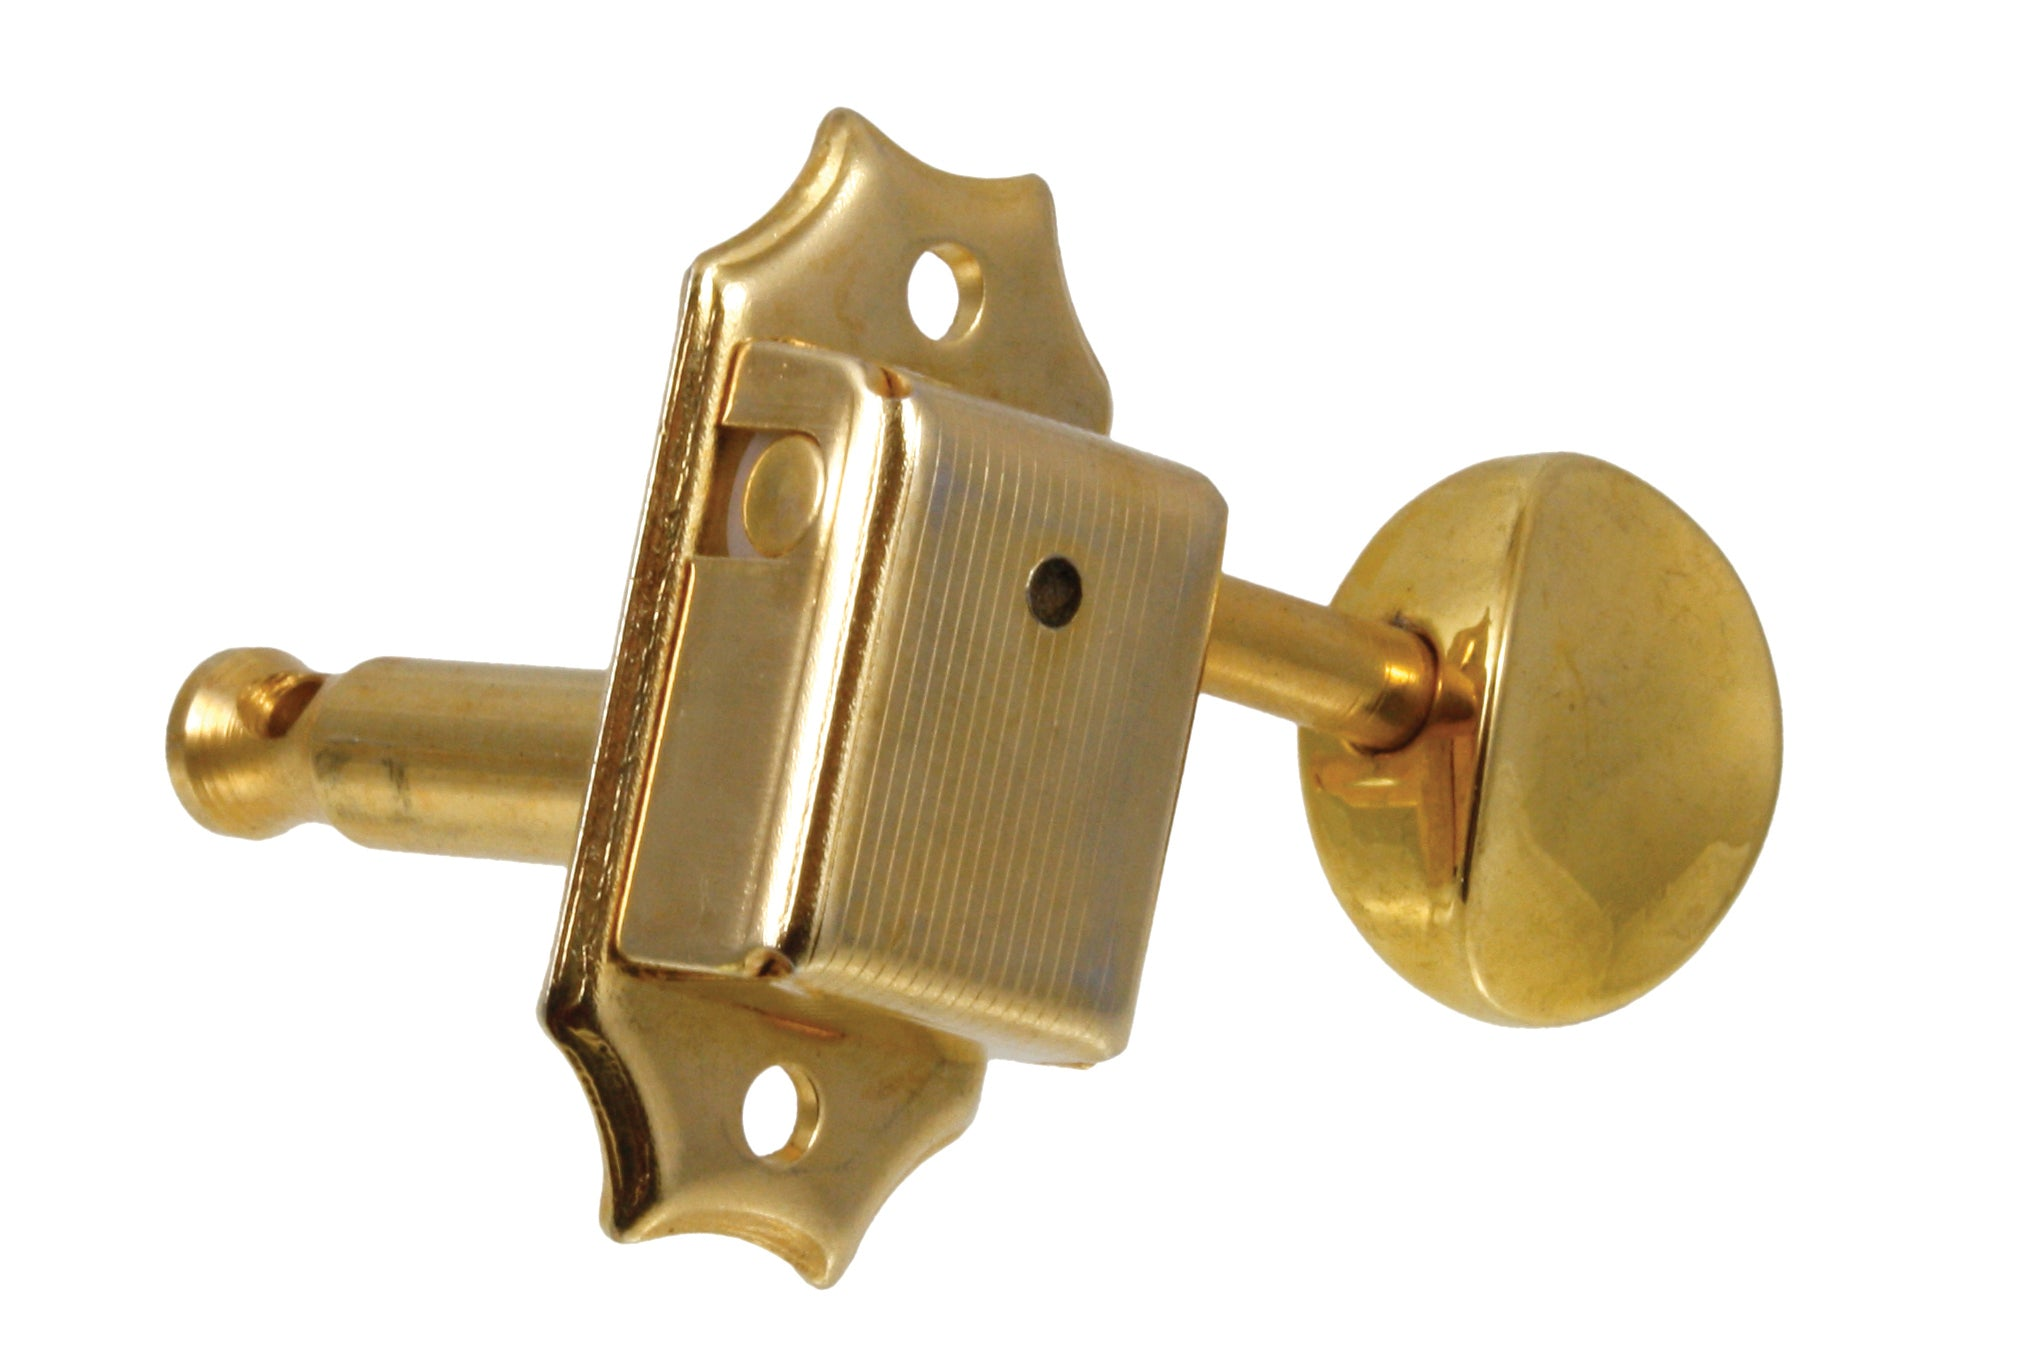 TK-0875 Gotoh SD90 Vintage-style 3x3 Keys with Metal Buttons